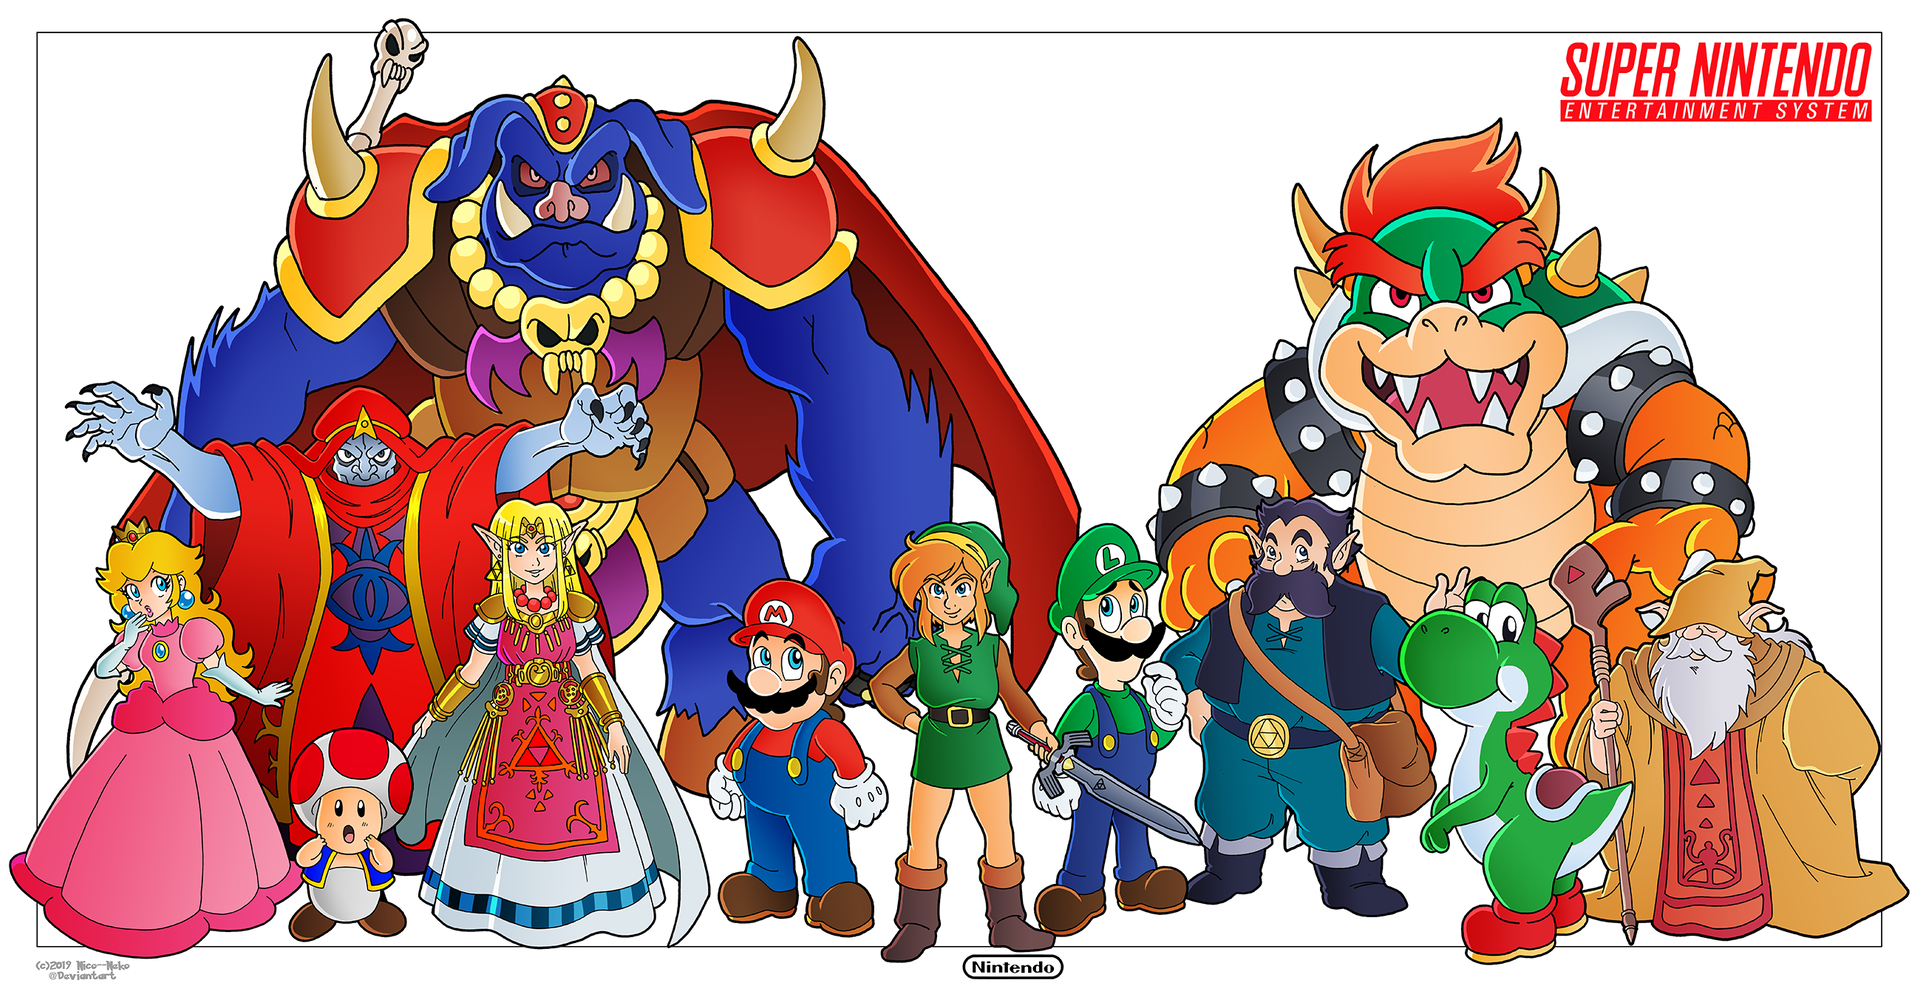 Mario and Zelda - SNES Tribute by Nico--Neko on DeviantArt